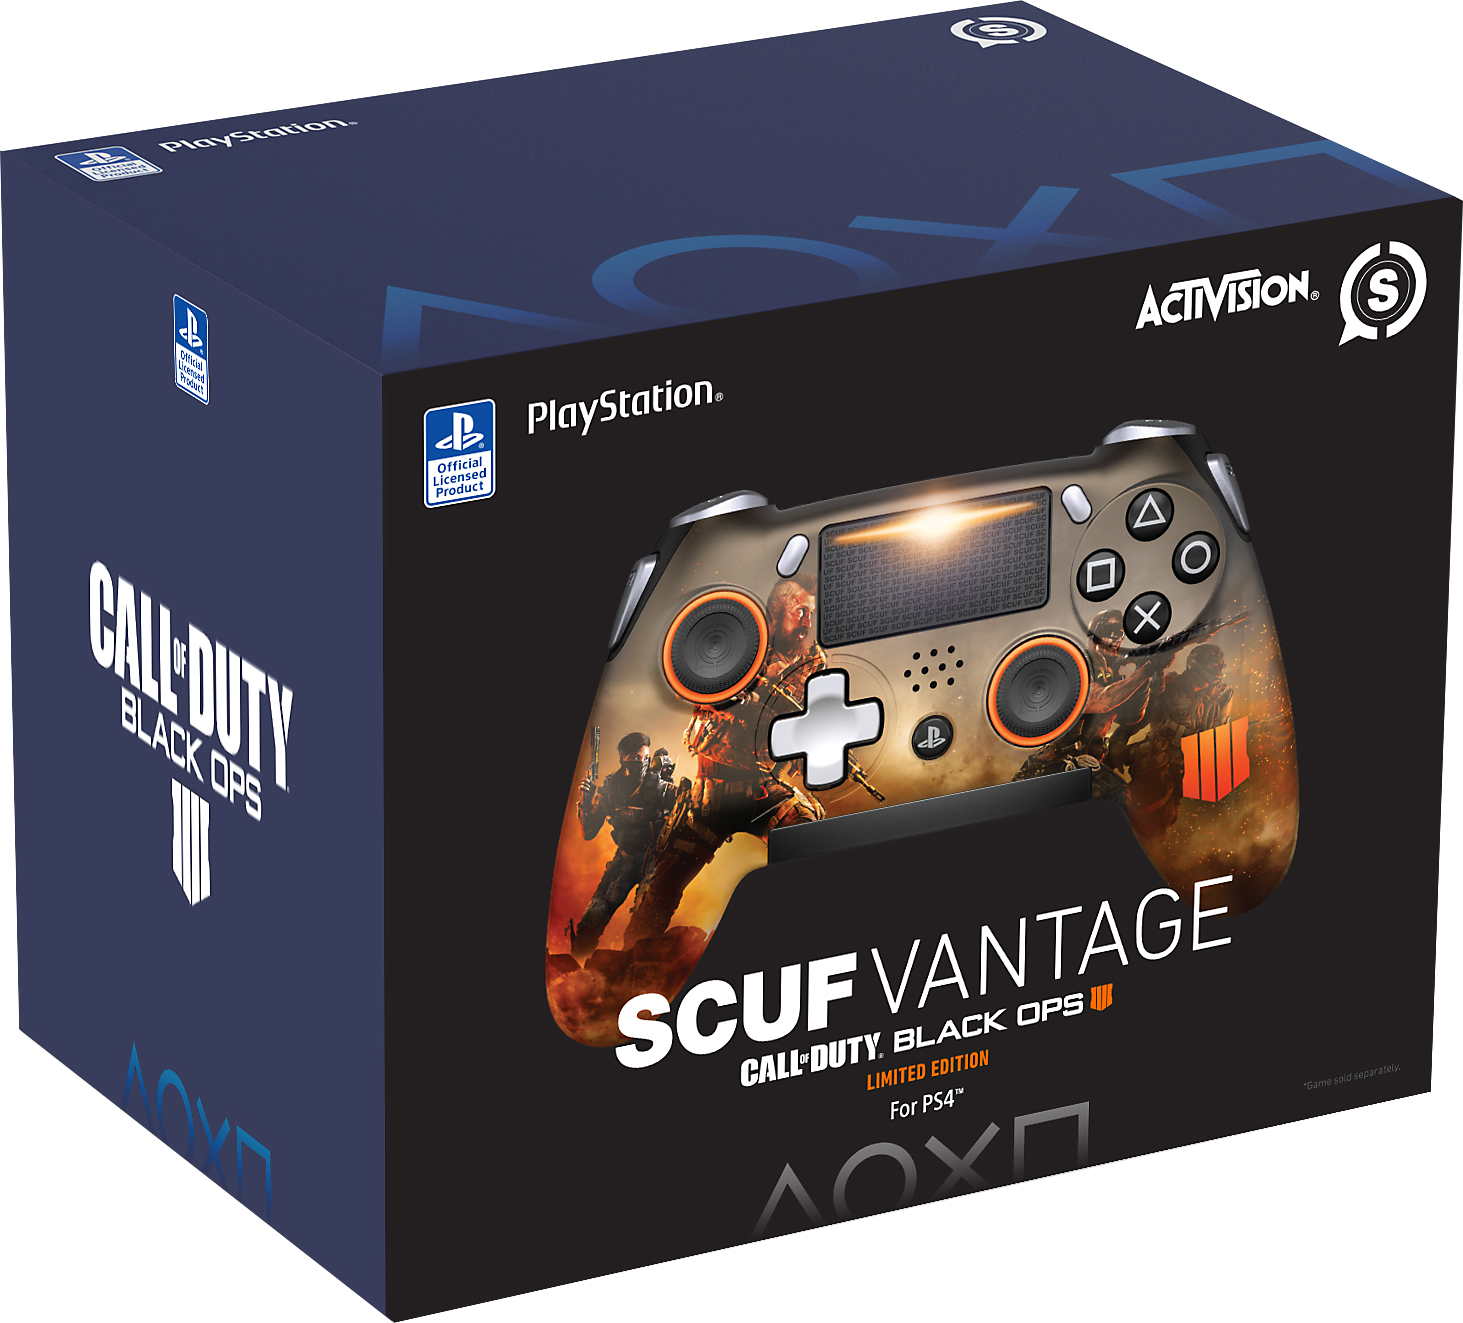 SCUF Vantage Black Ops 4 Limited Edition Packaging Shot 1